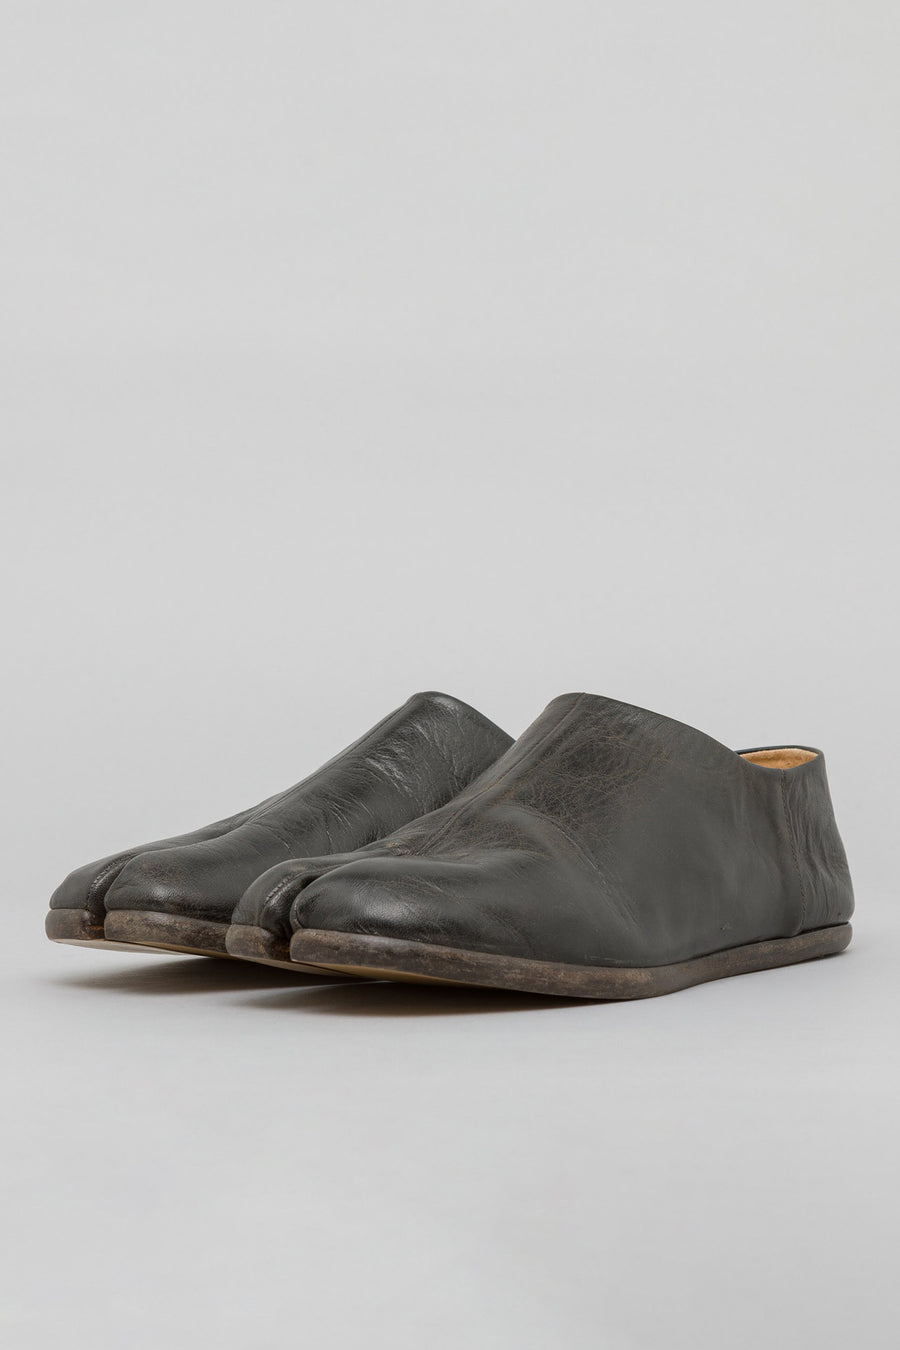 Maison Margiela Tabi Loafer in Black Goat Leather - Notre